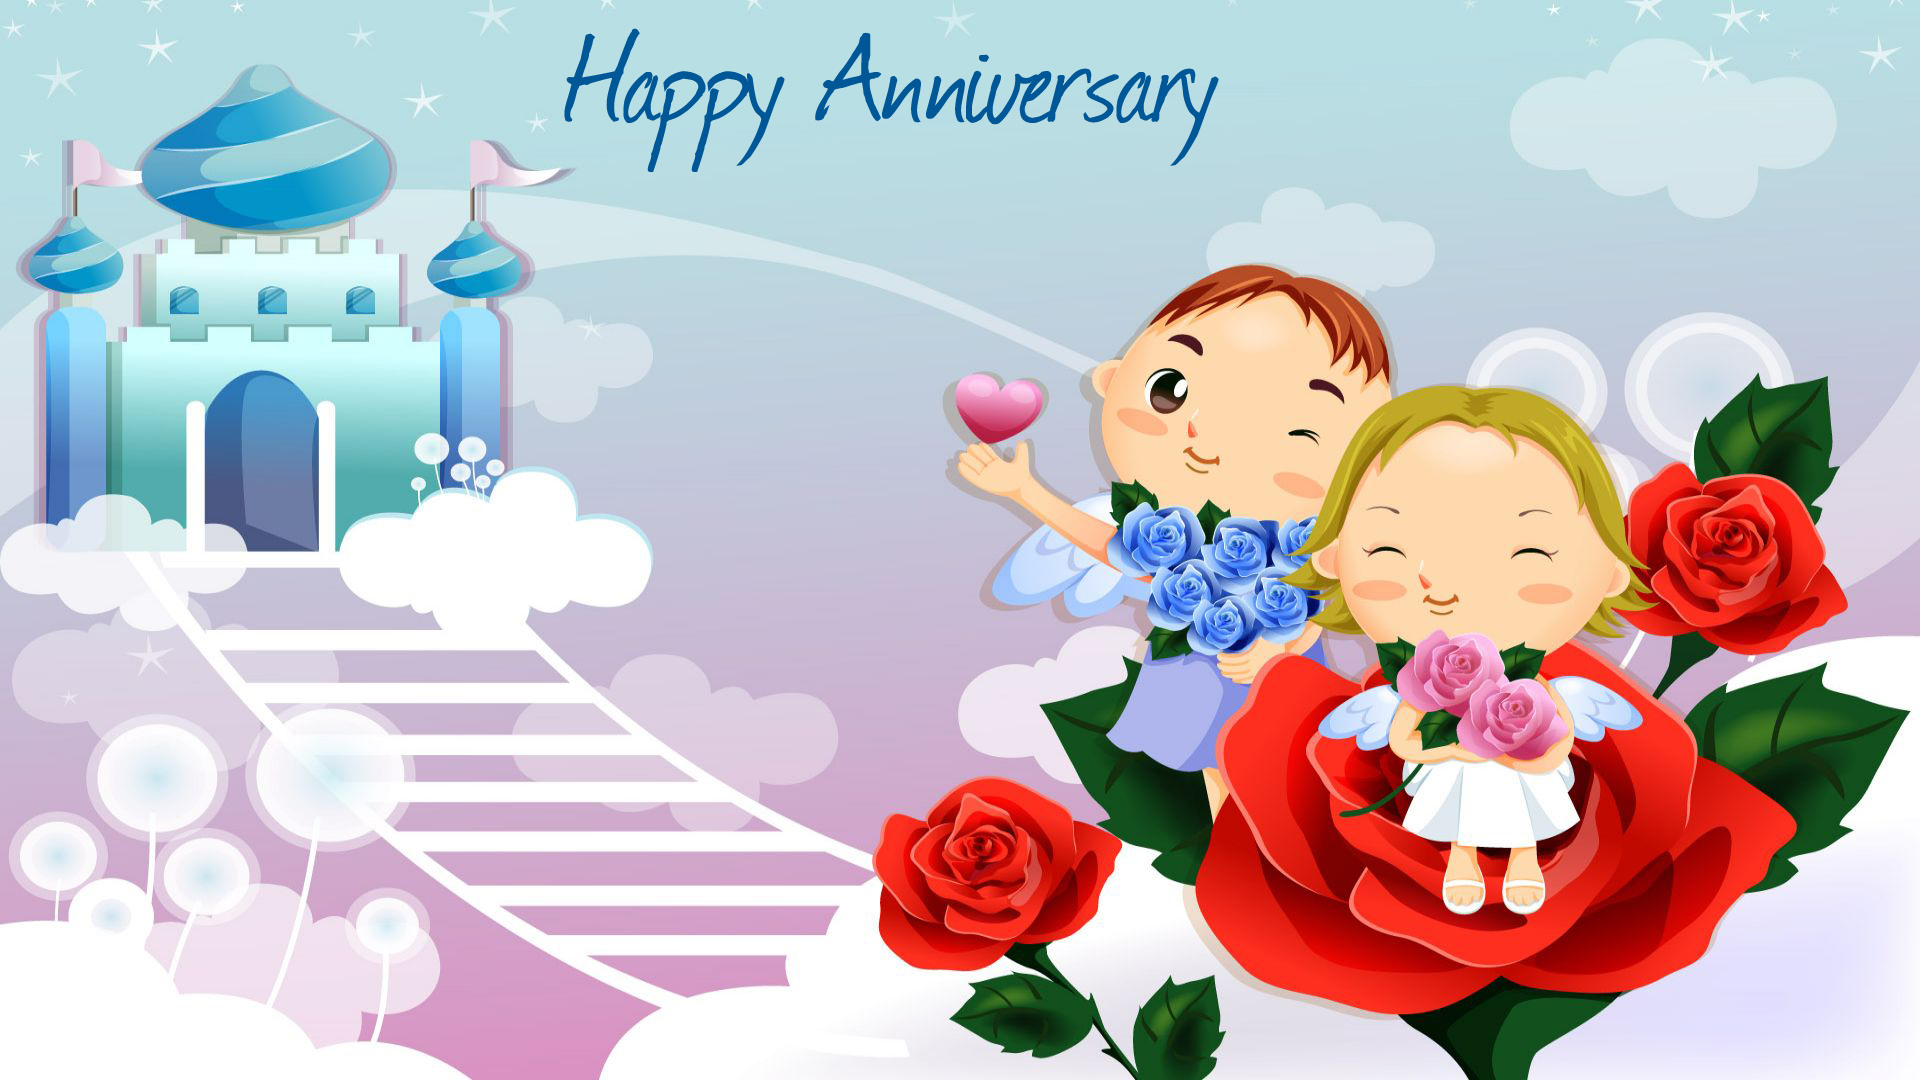 Anniversary Wishes Card Wallpaper For Wishes And Desktop Background  1920x1080